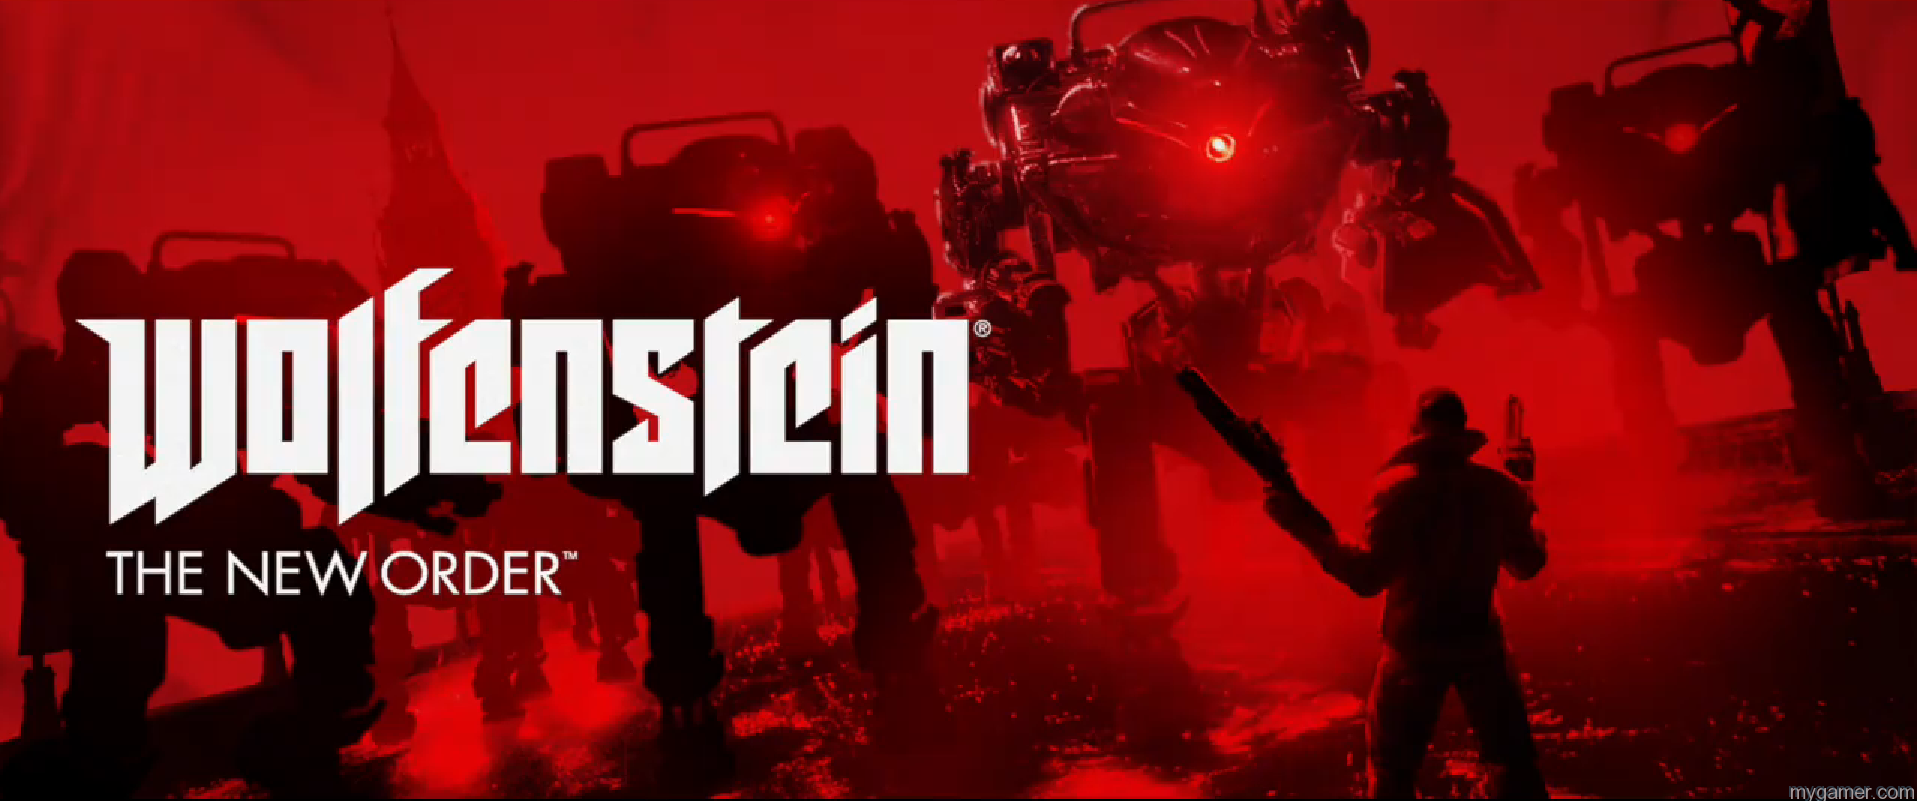 Wolfenstein The New Order Now Available Wolfenstein The New Order Now Available Wolfenstein The New Order